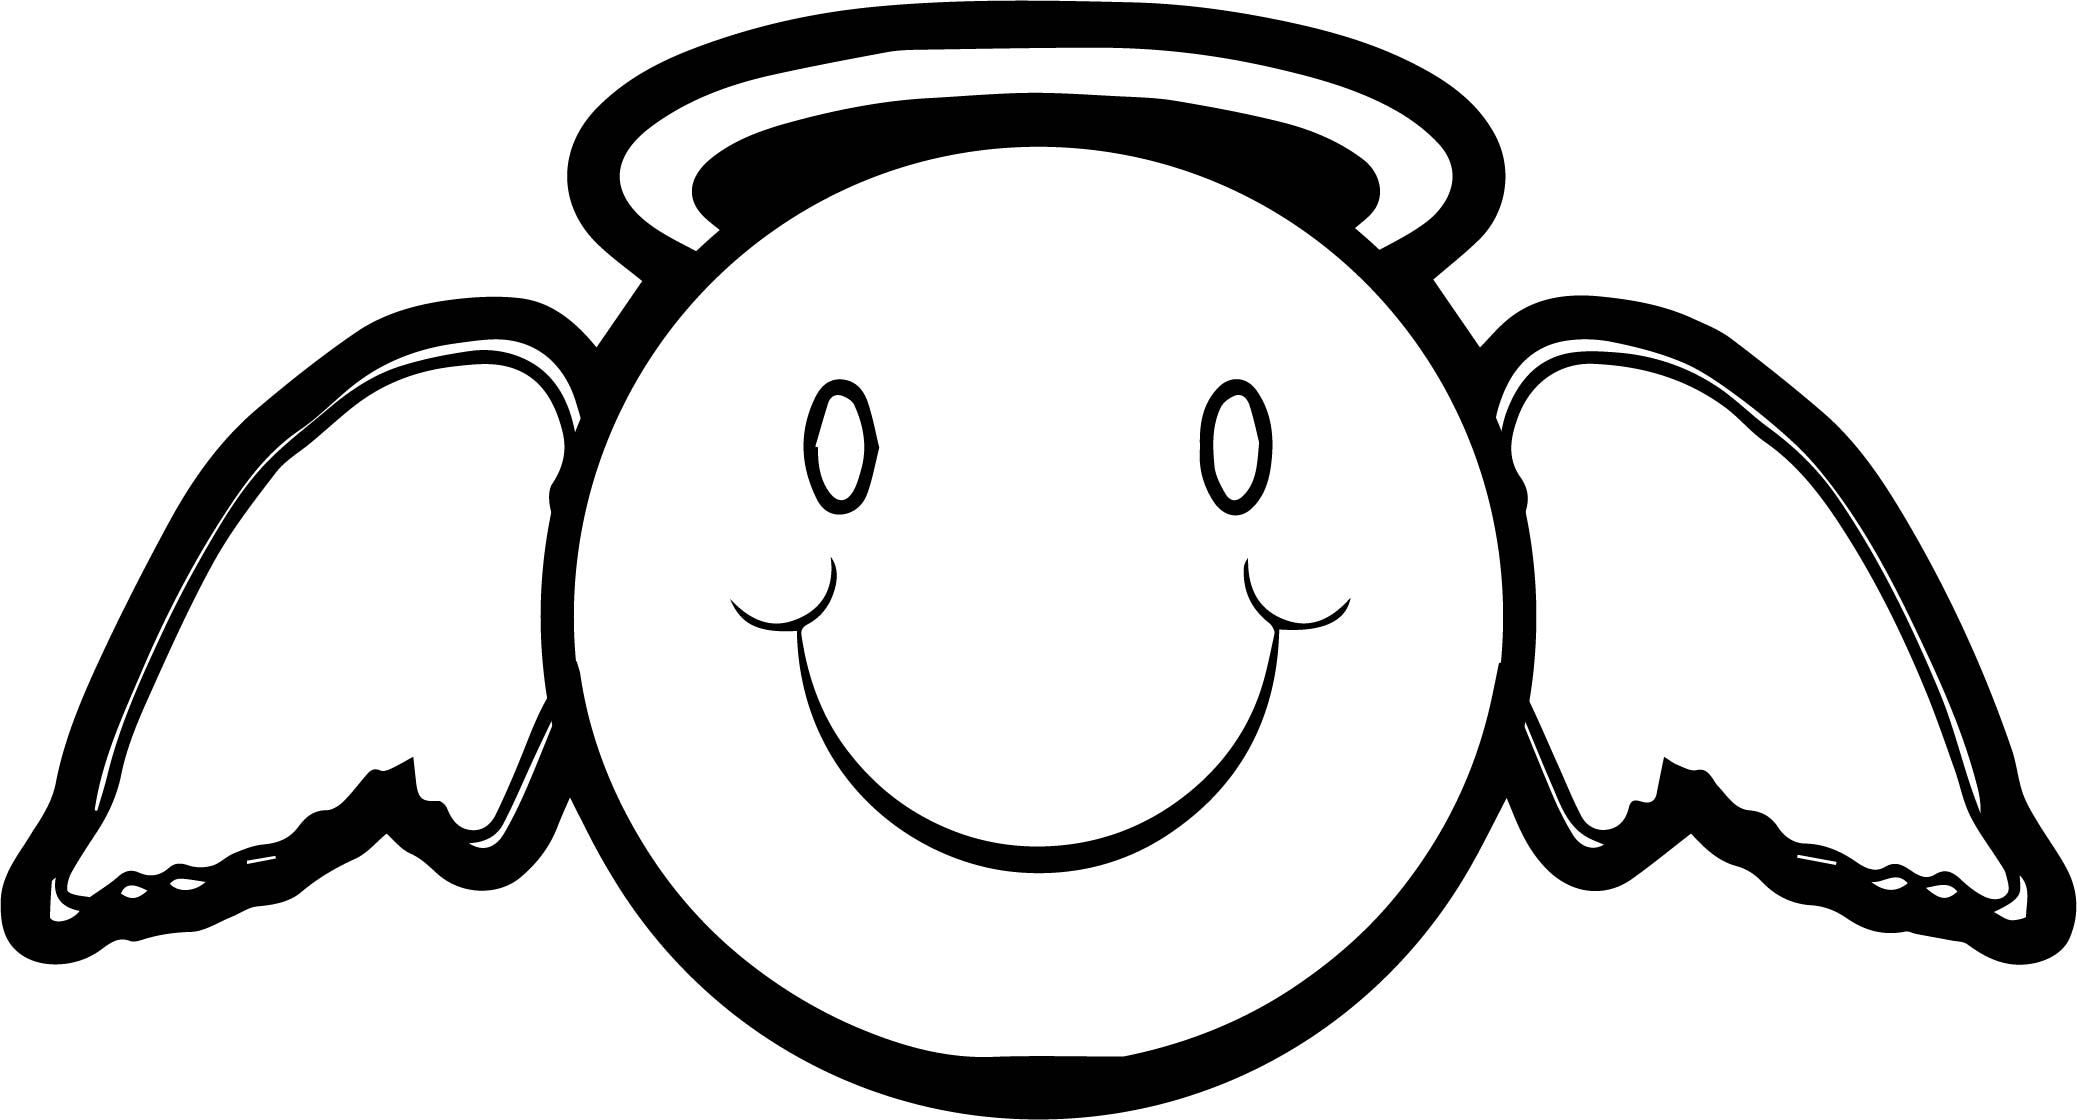 Emology Smiley Emoticon Angel Man Coloring Page